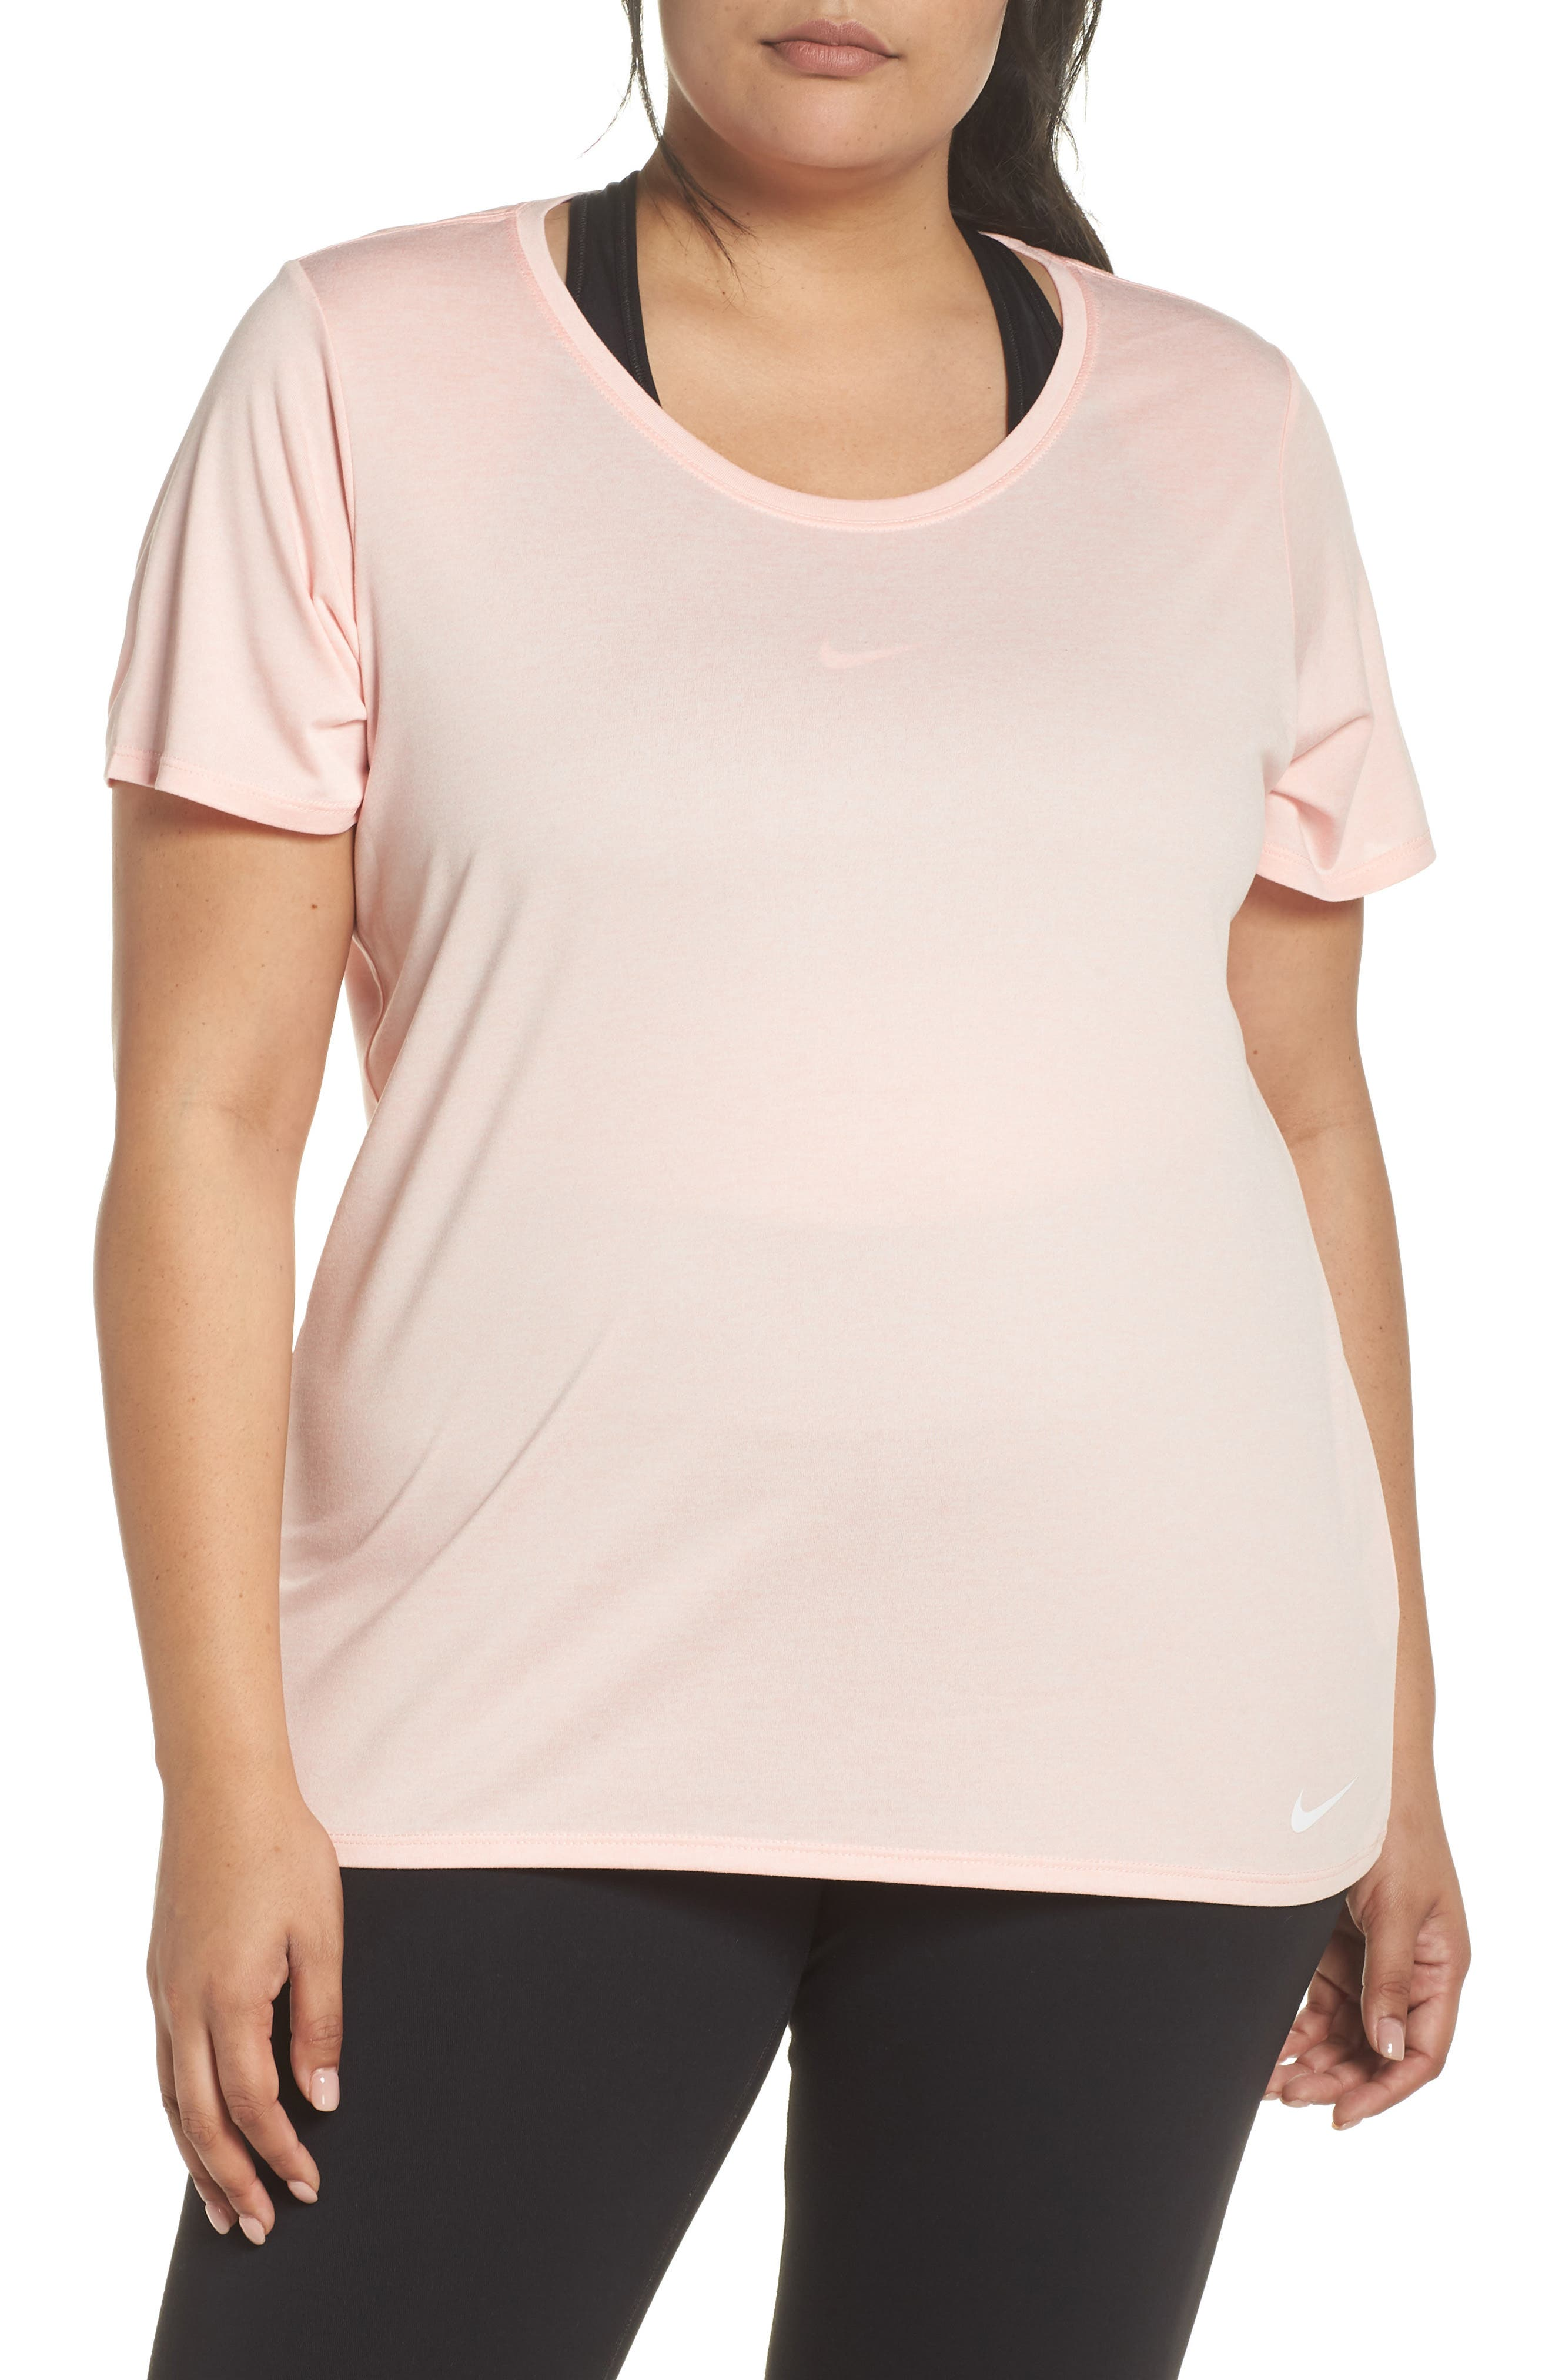 Dry Legend Training Tee,                             Main thumbnail 1, color,                             Storm Pink/ White/ White